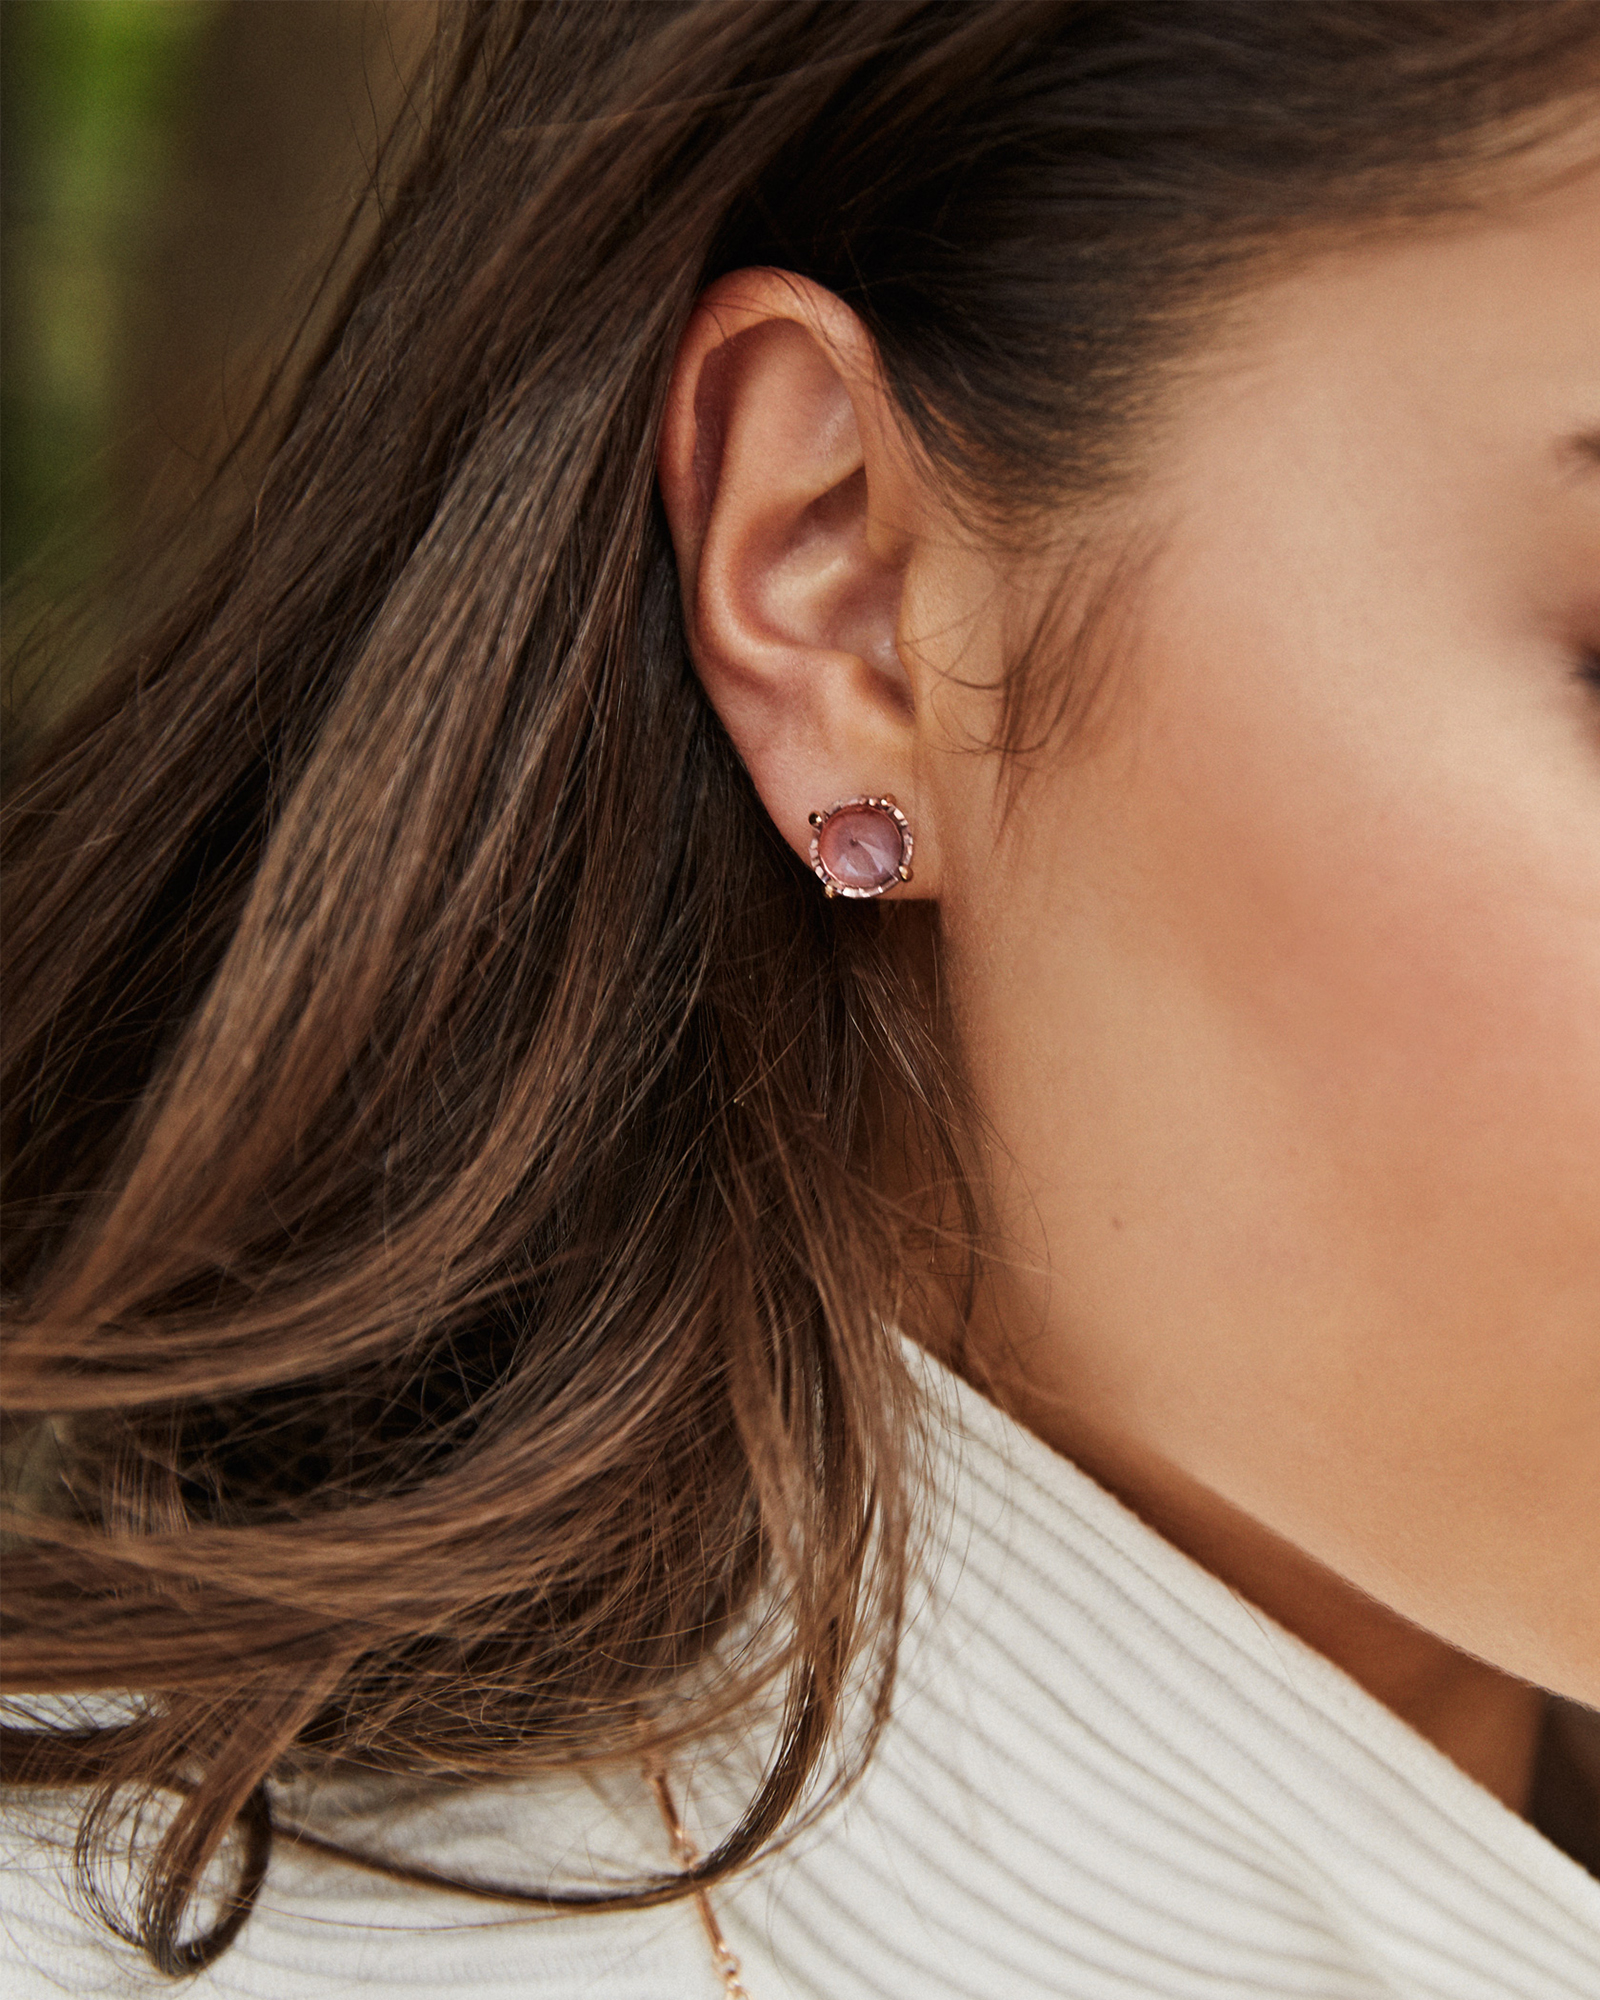 Jolie Gold Stud Earrings in Gray Illusion